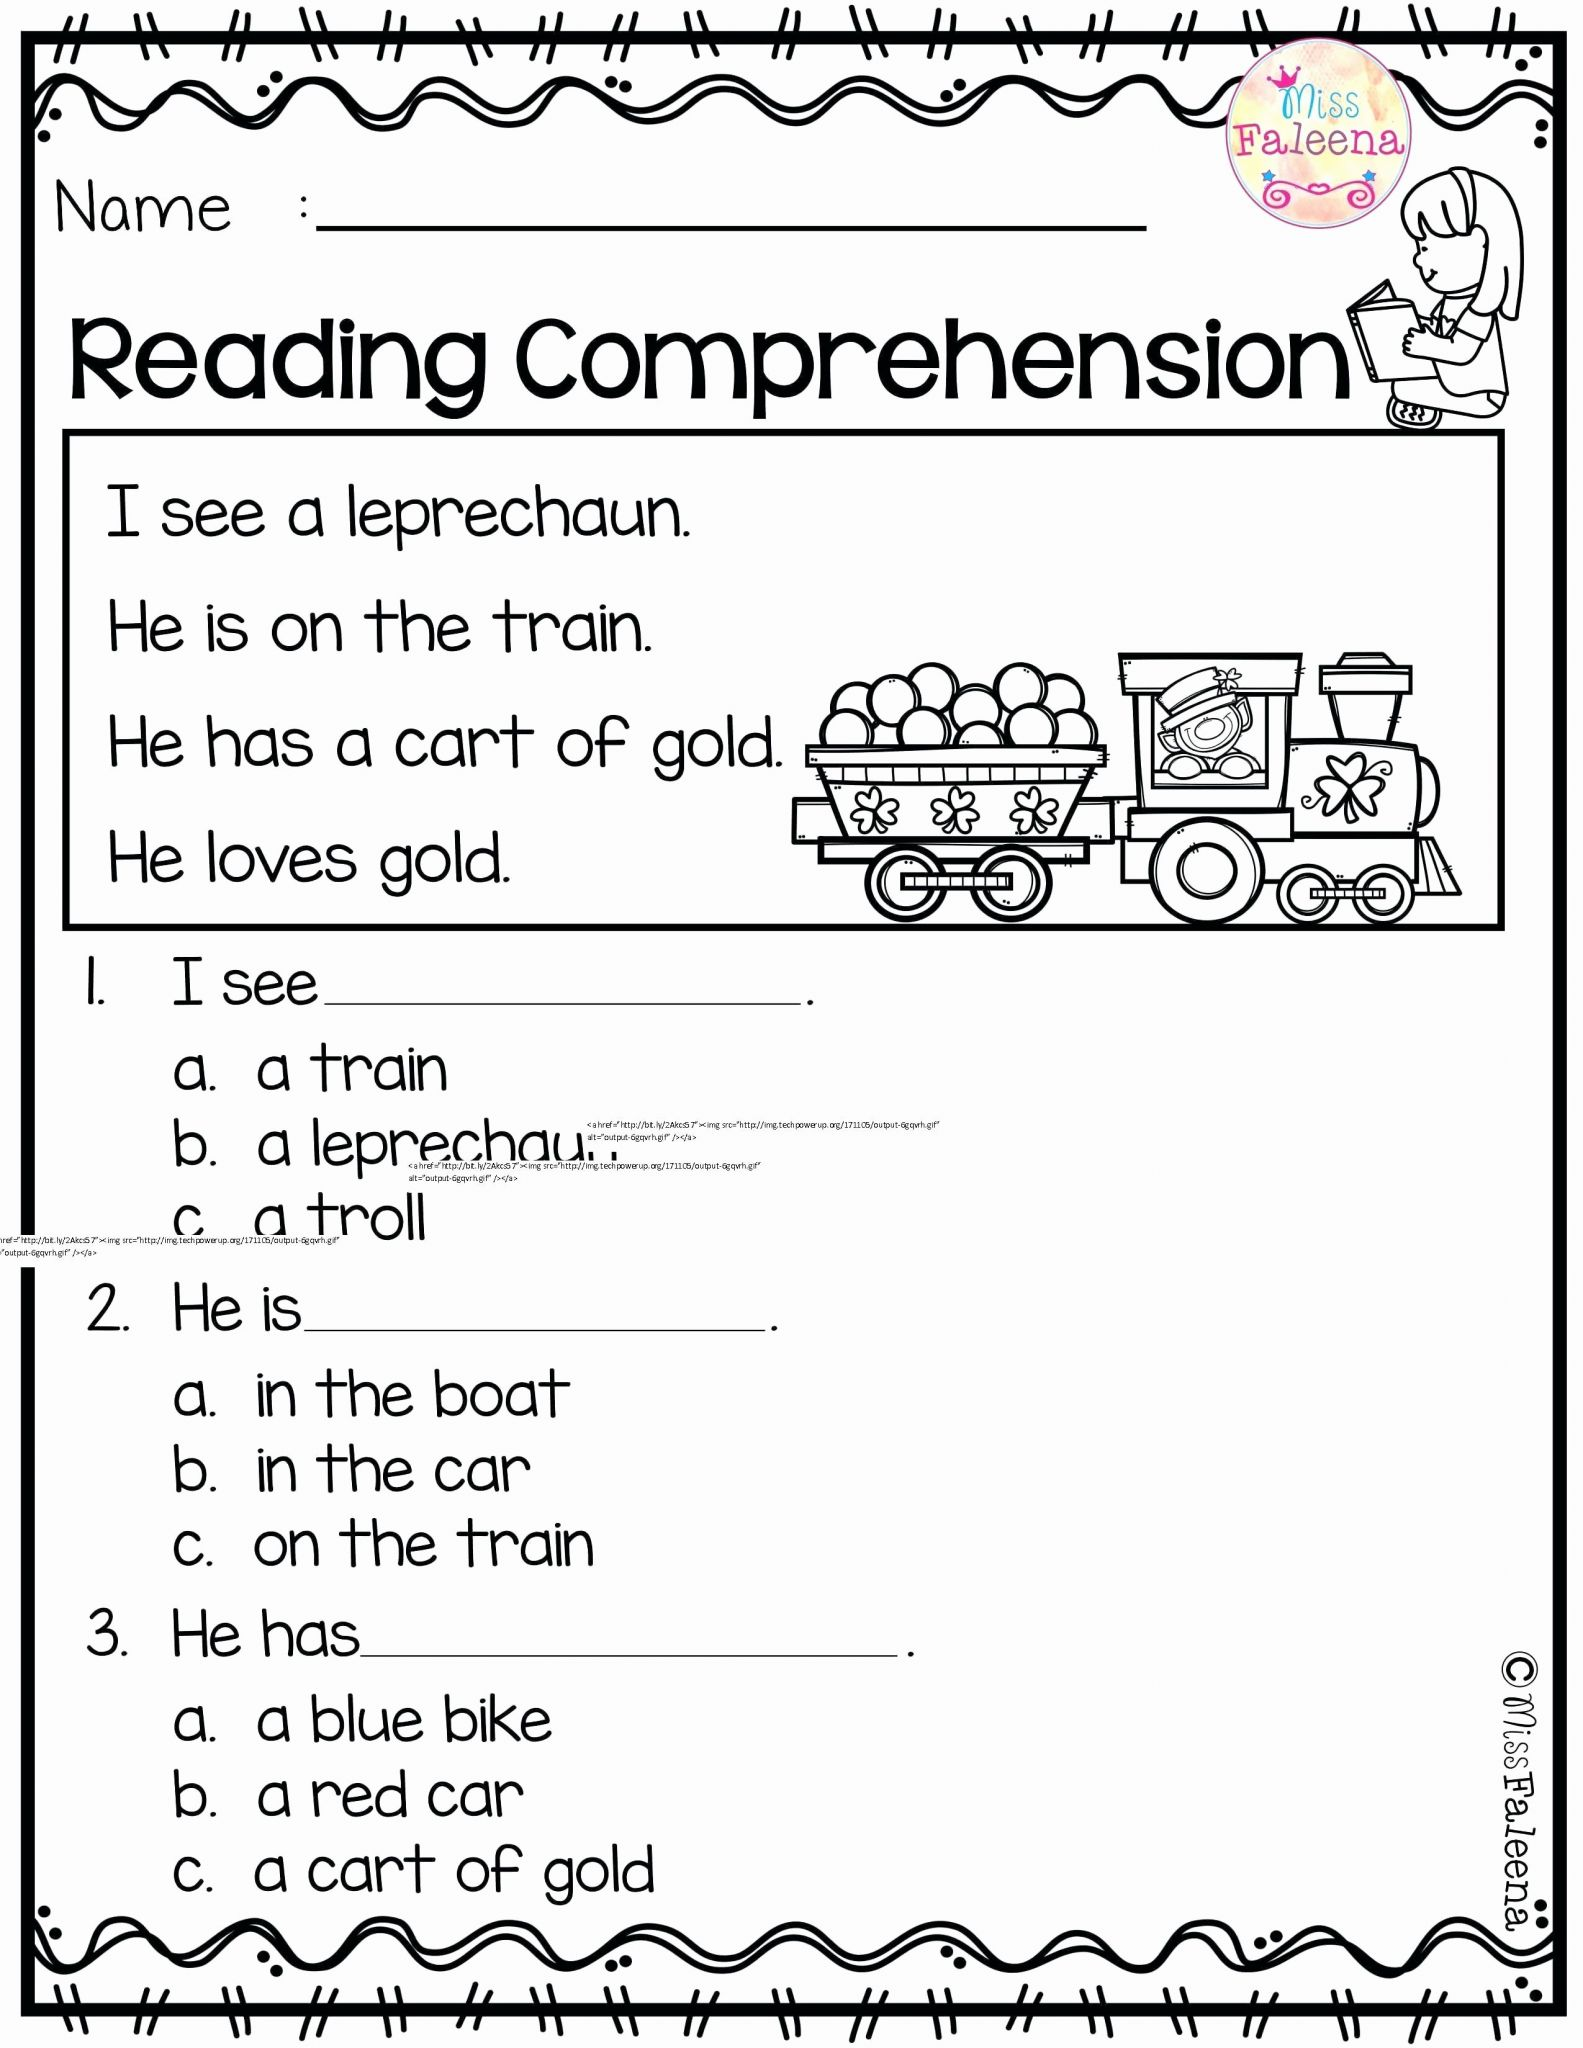 9th Grade Reading Comprehension Worksheets